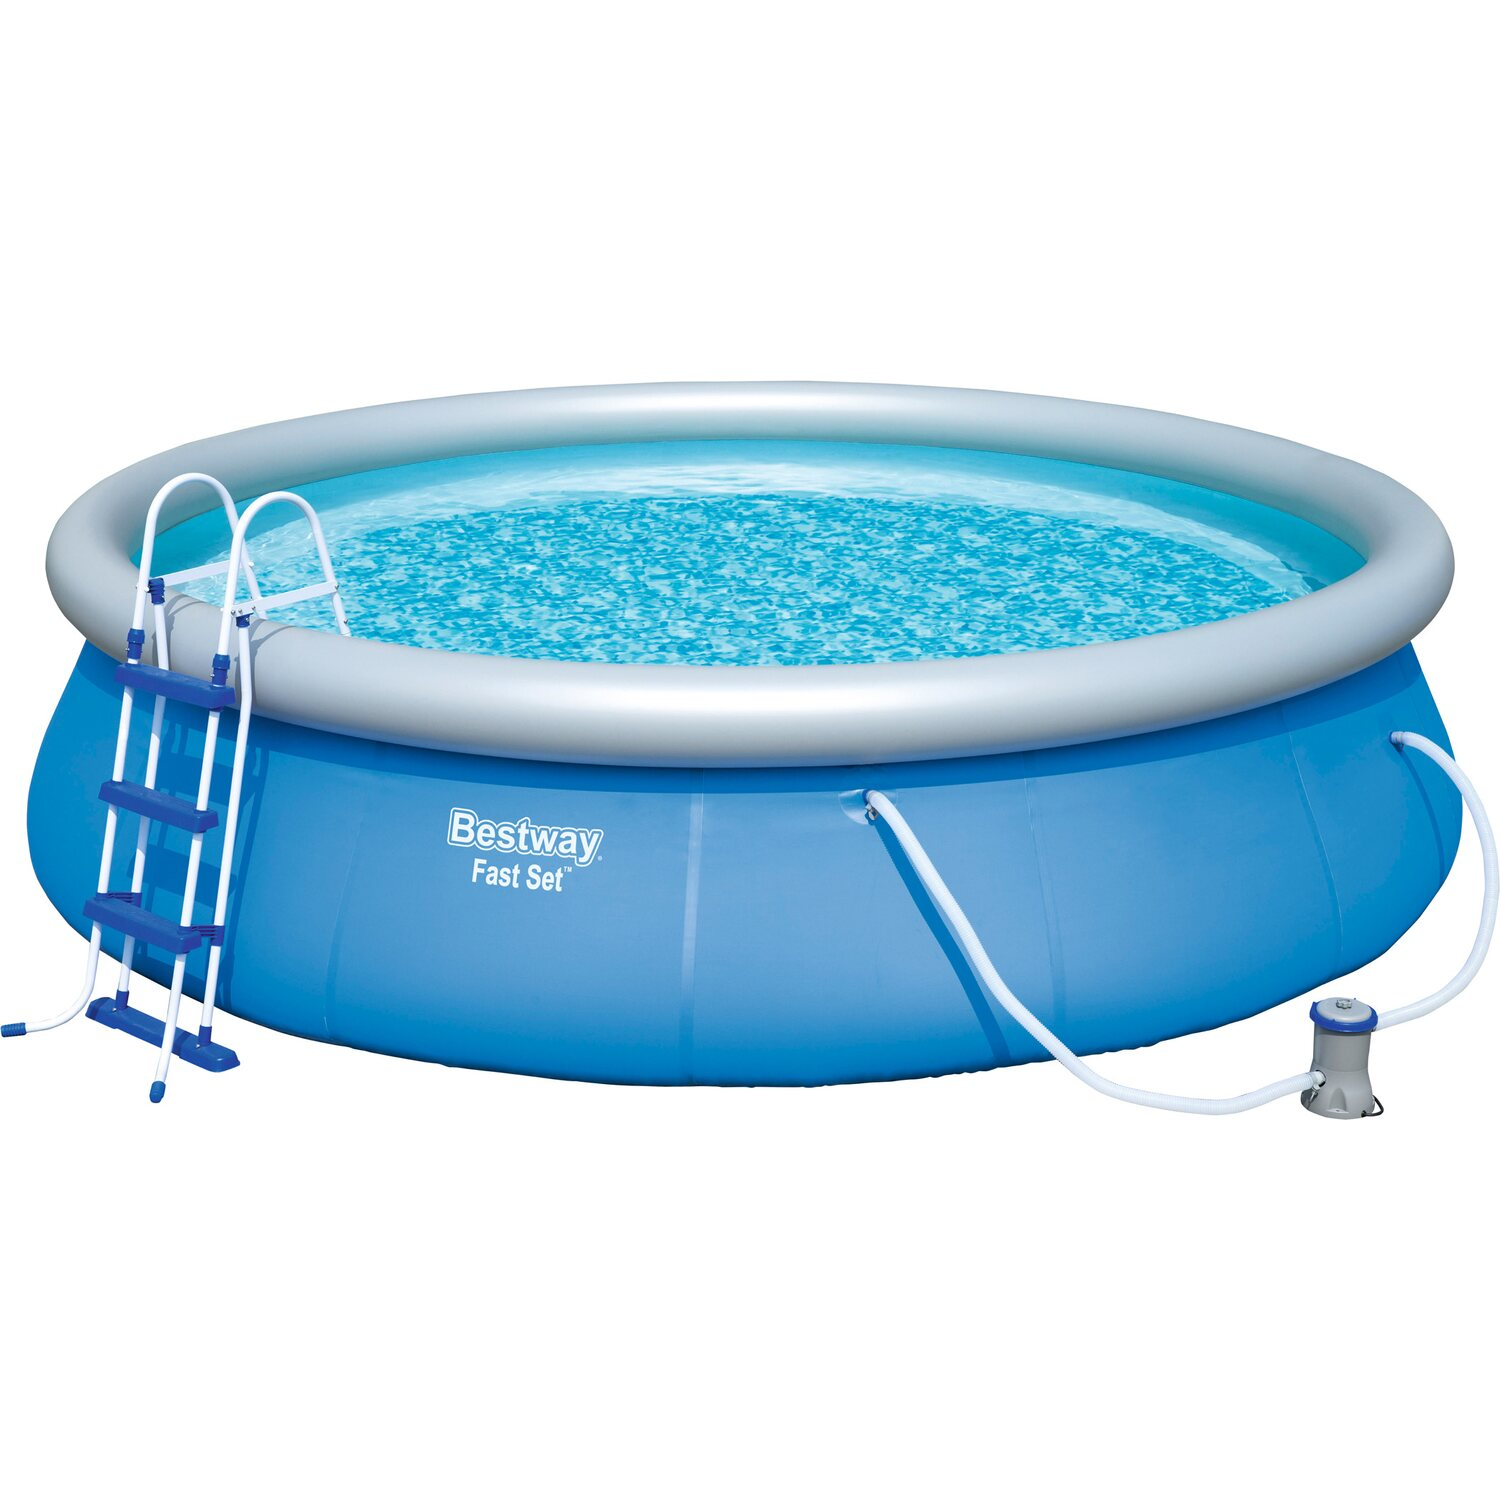 Bestway fast set pool kaufen bei obi for Bestway pool obi